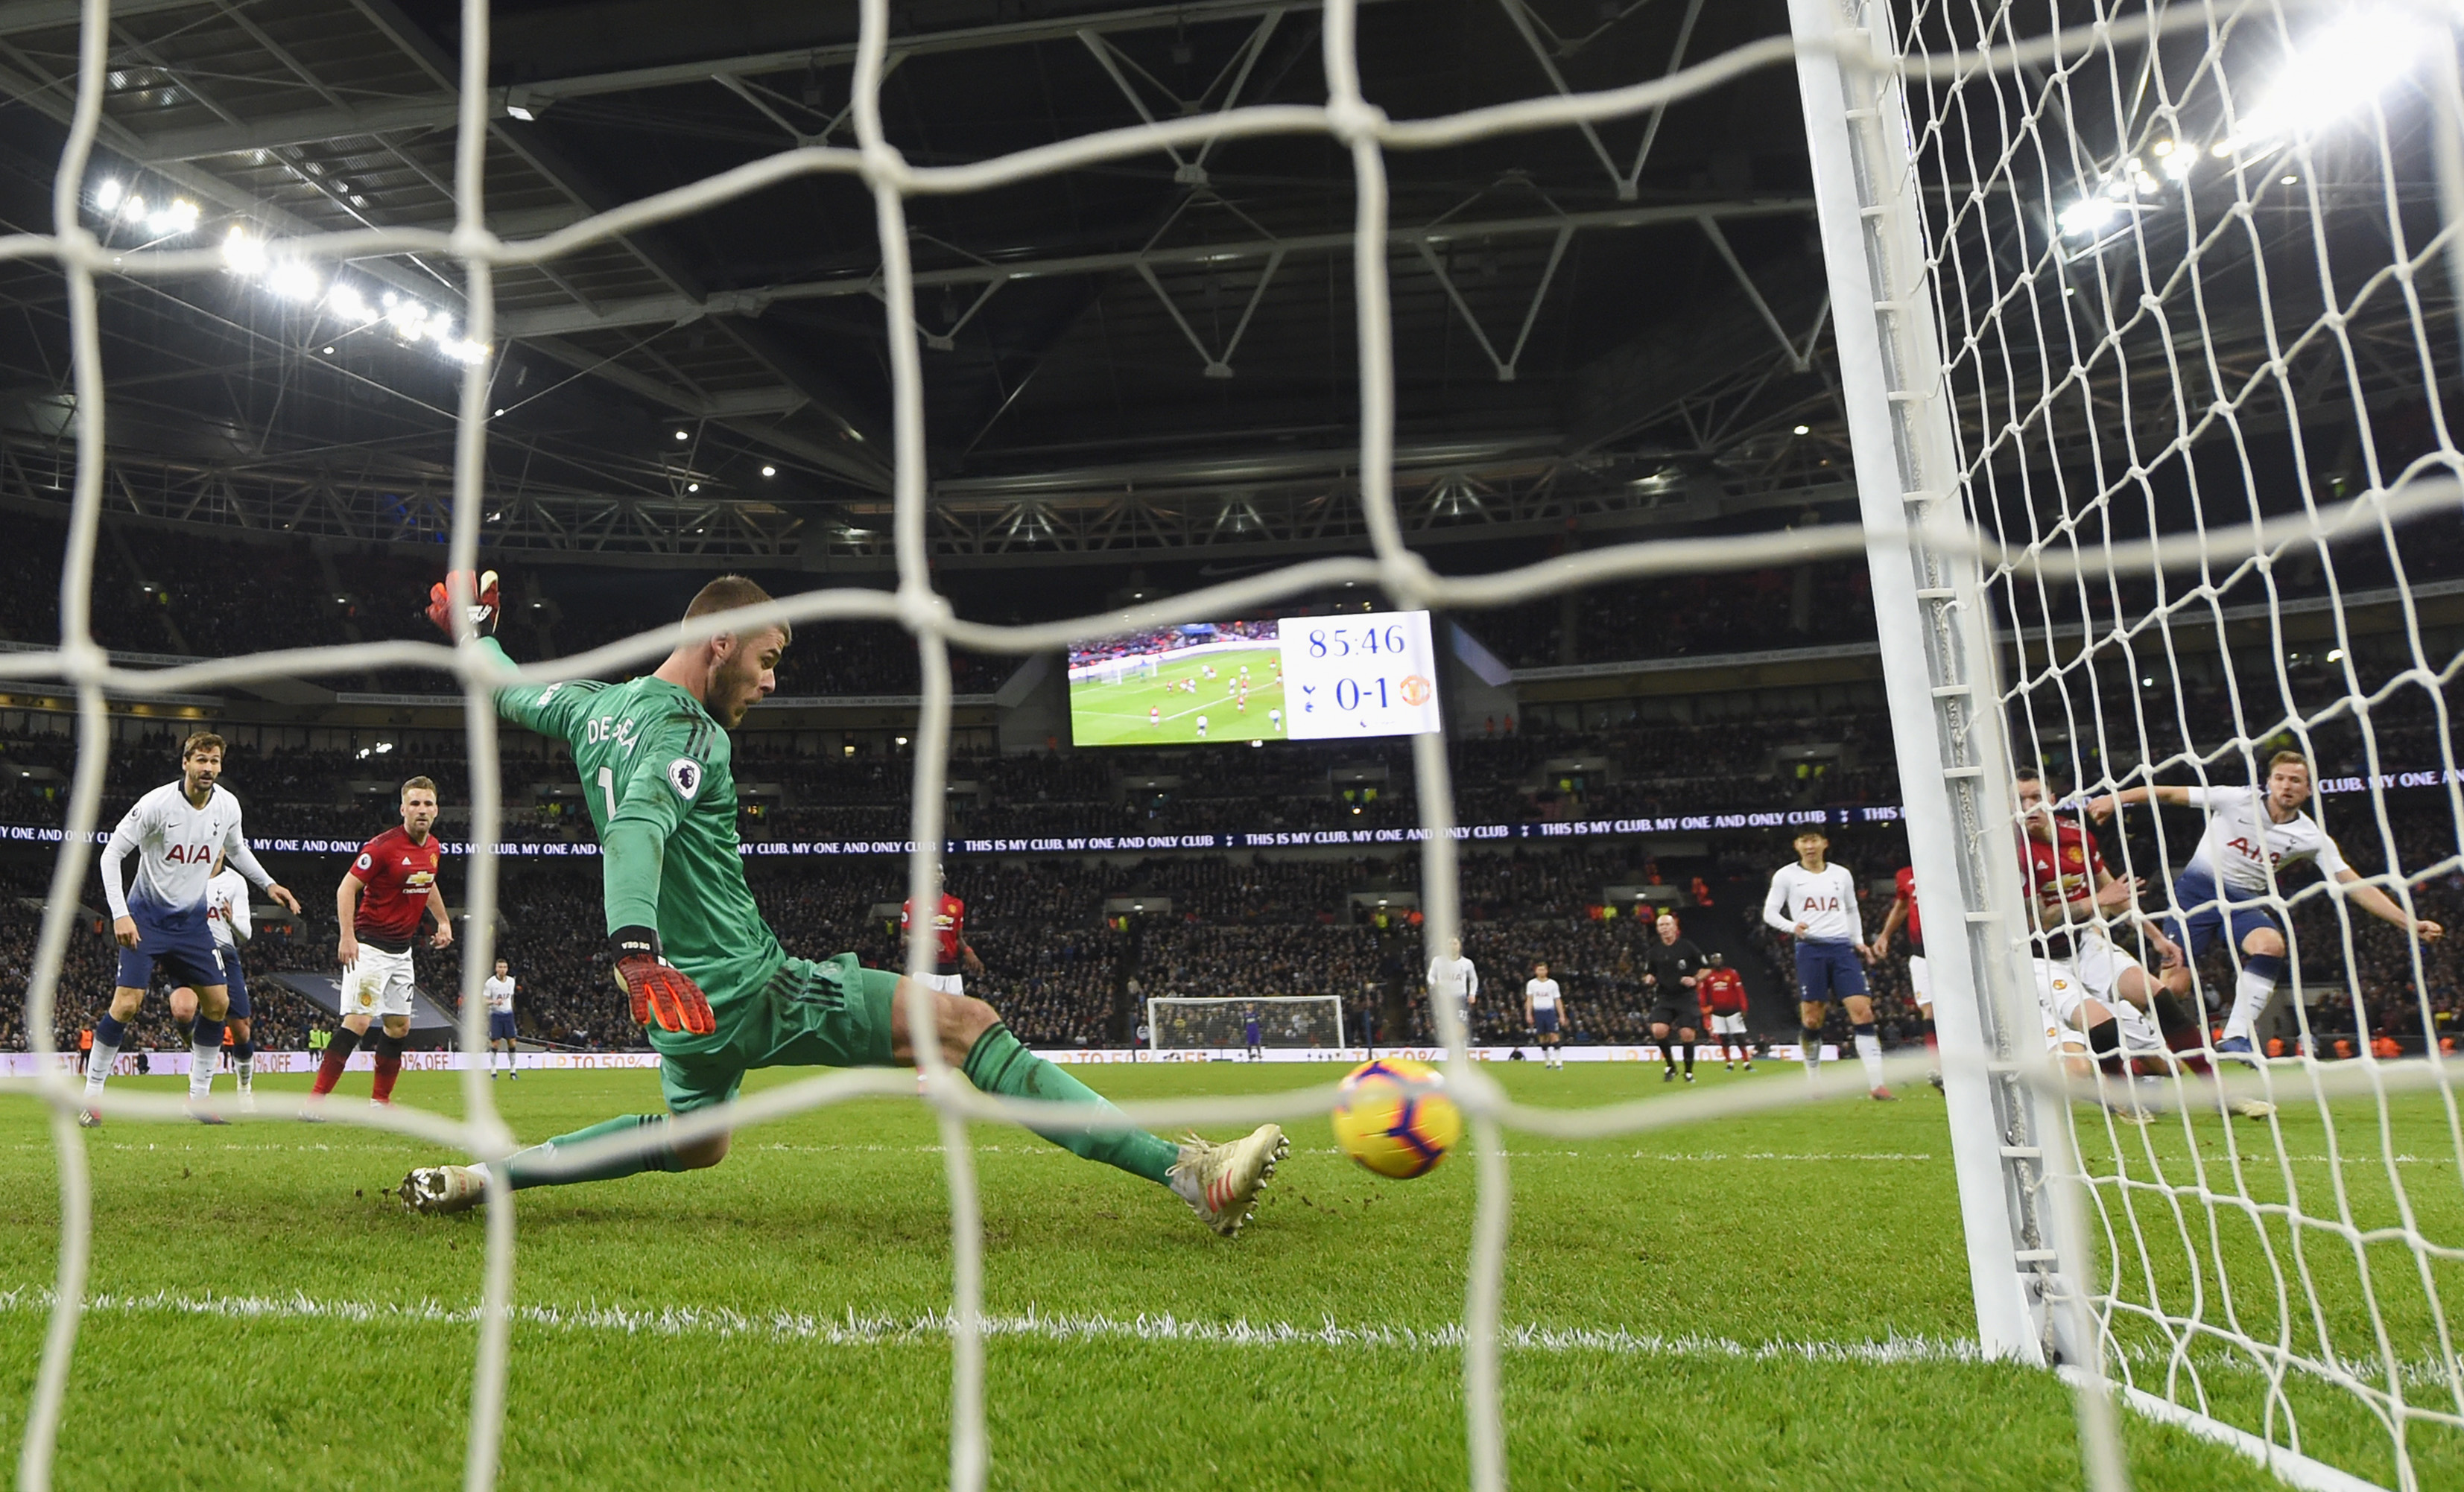 LONDON, ENGLAND - JANUARY 13: David De Gea of Manchester United makes a save from Harry Kane of Tottenham Hotspur (R) during the Premier League match between Tottenham Hotspur and Manchester United at Wembley Stadium on January 13, 2019 in London, United Kingdom. (Photo by Mike Hewitt/Getty Images)